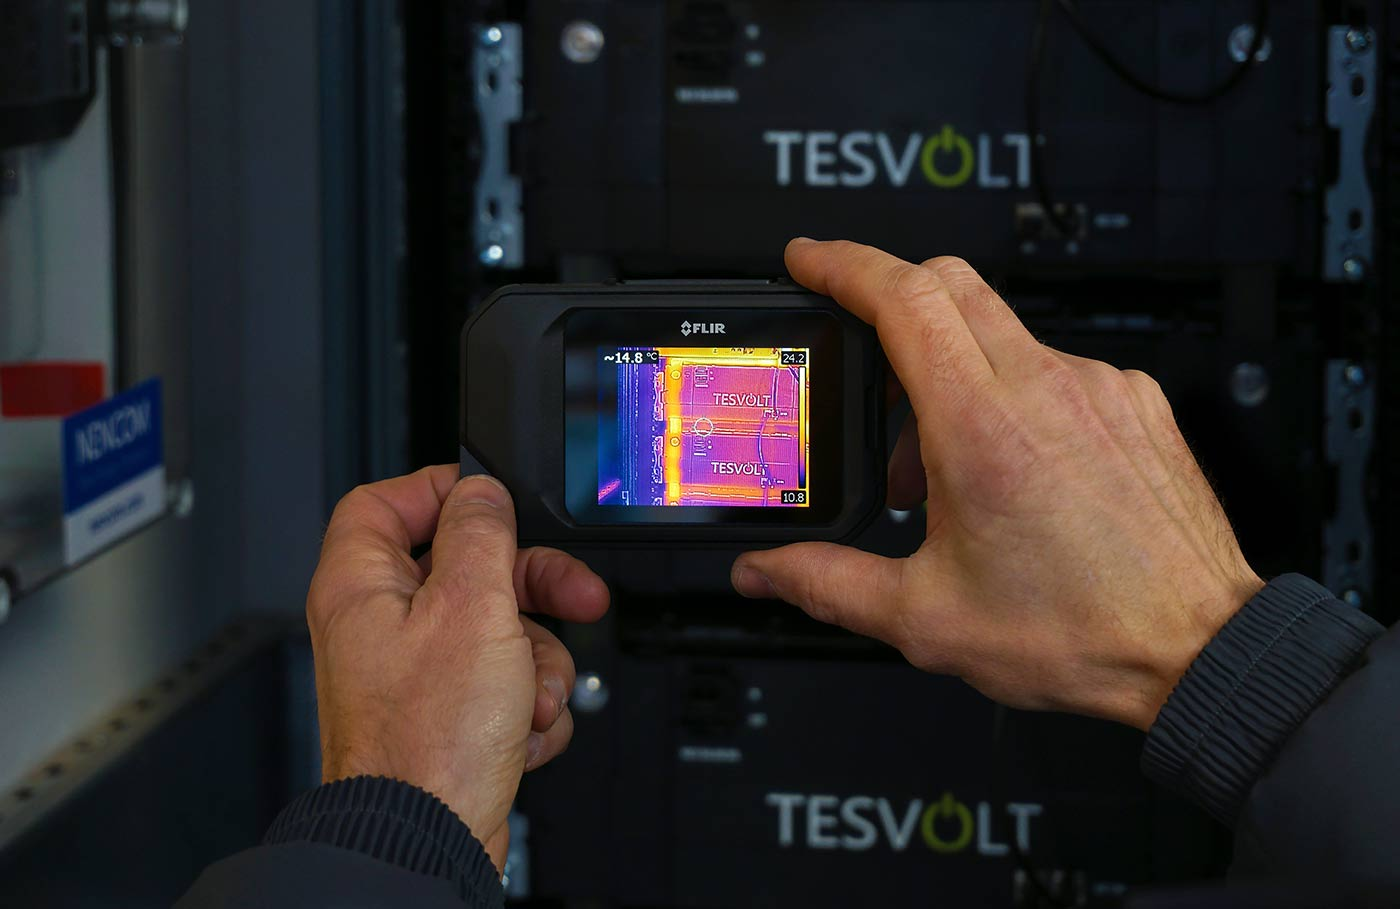 Checking the temperature of the energy storage system with a thermal imaging camera